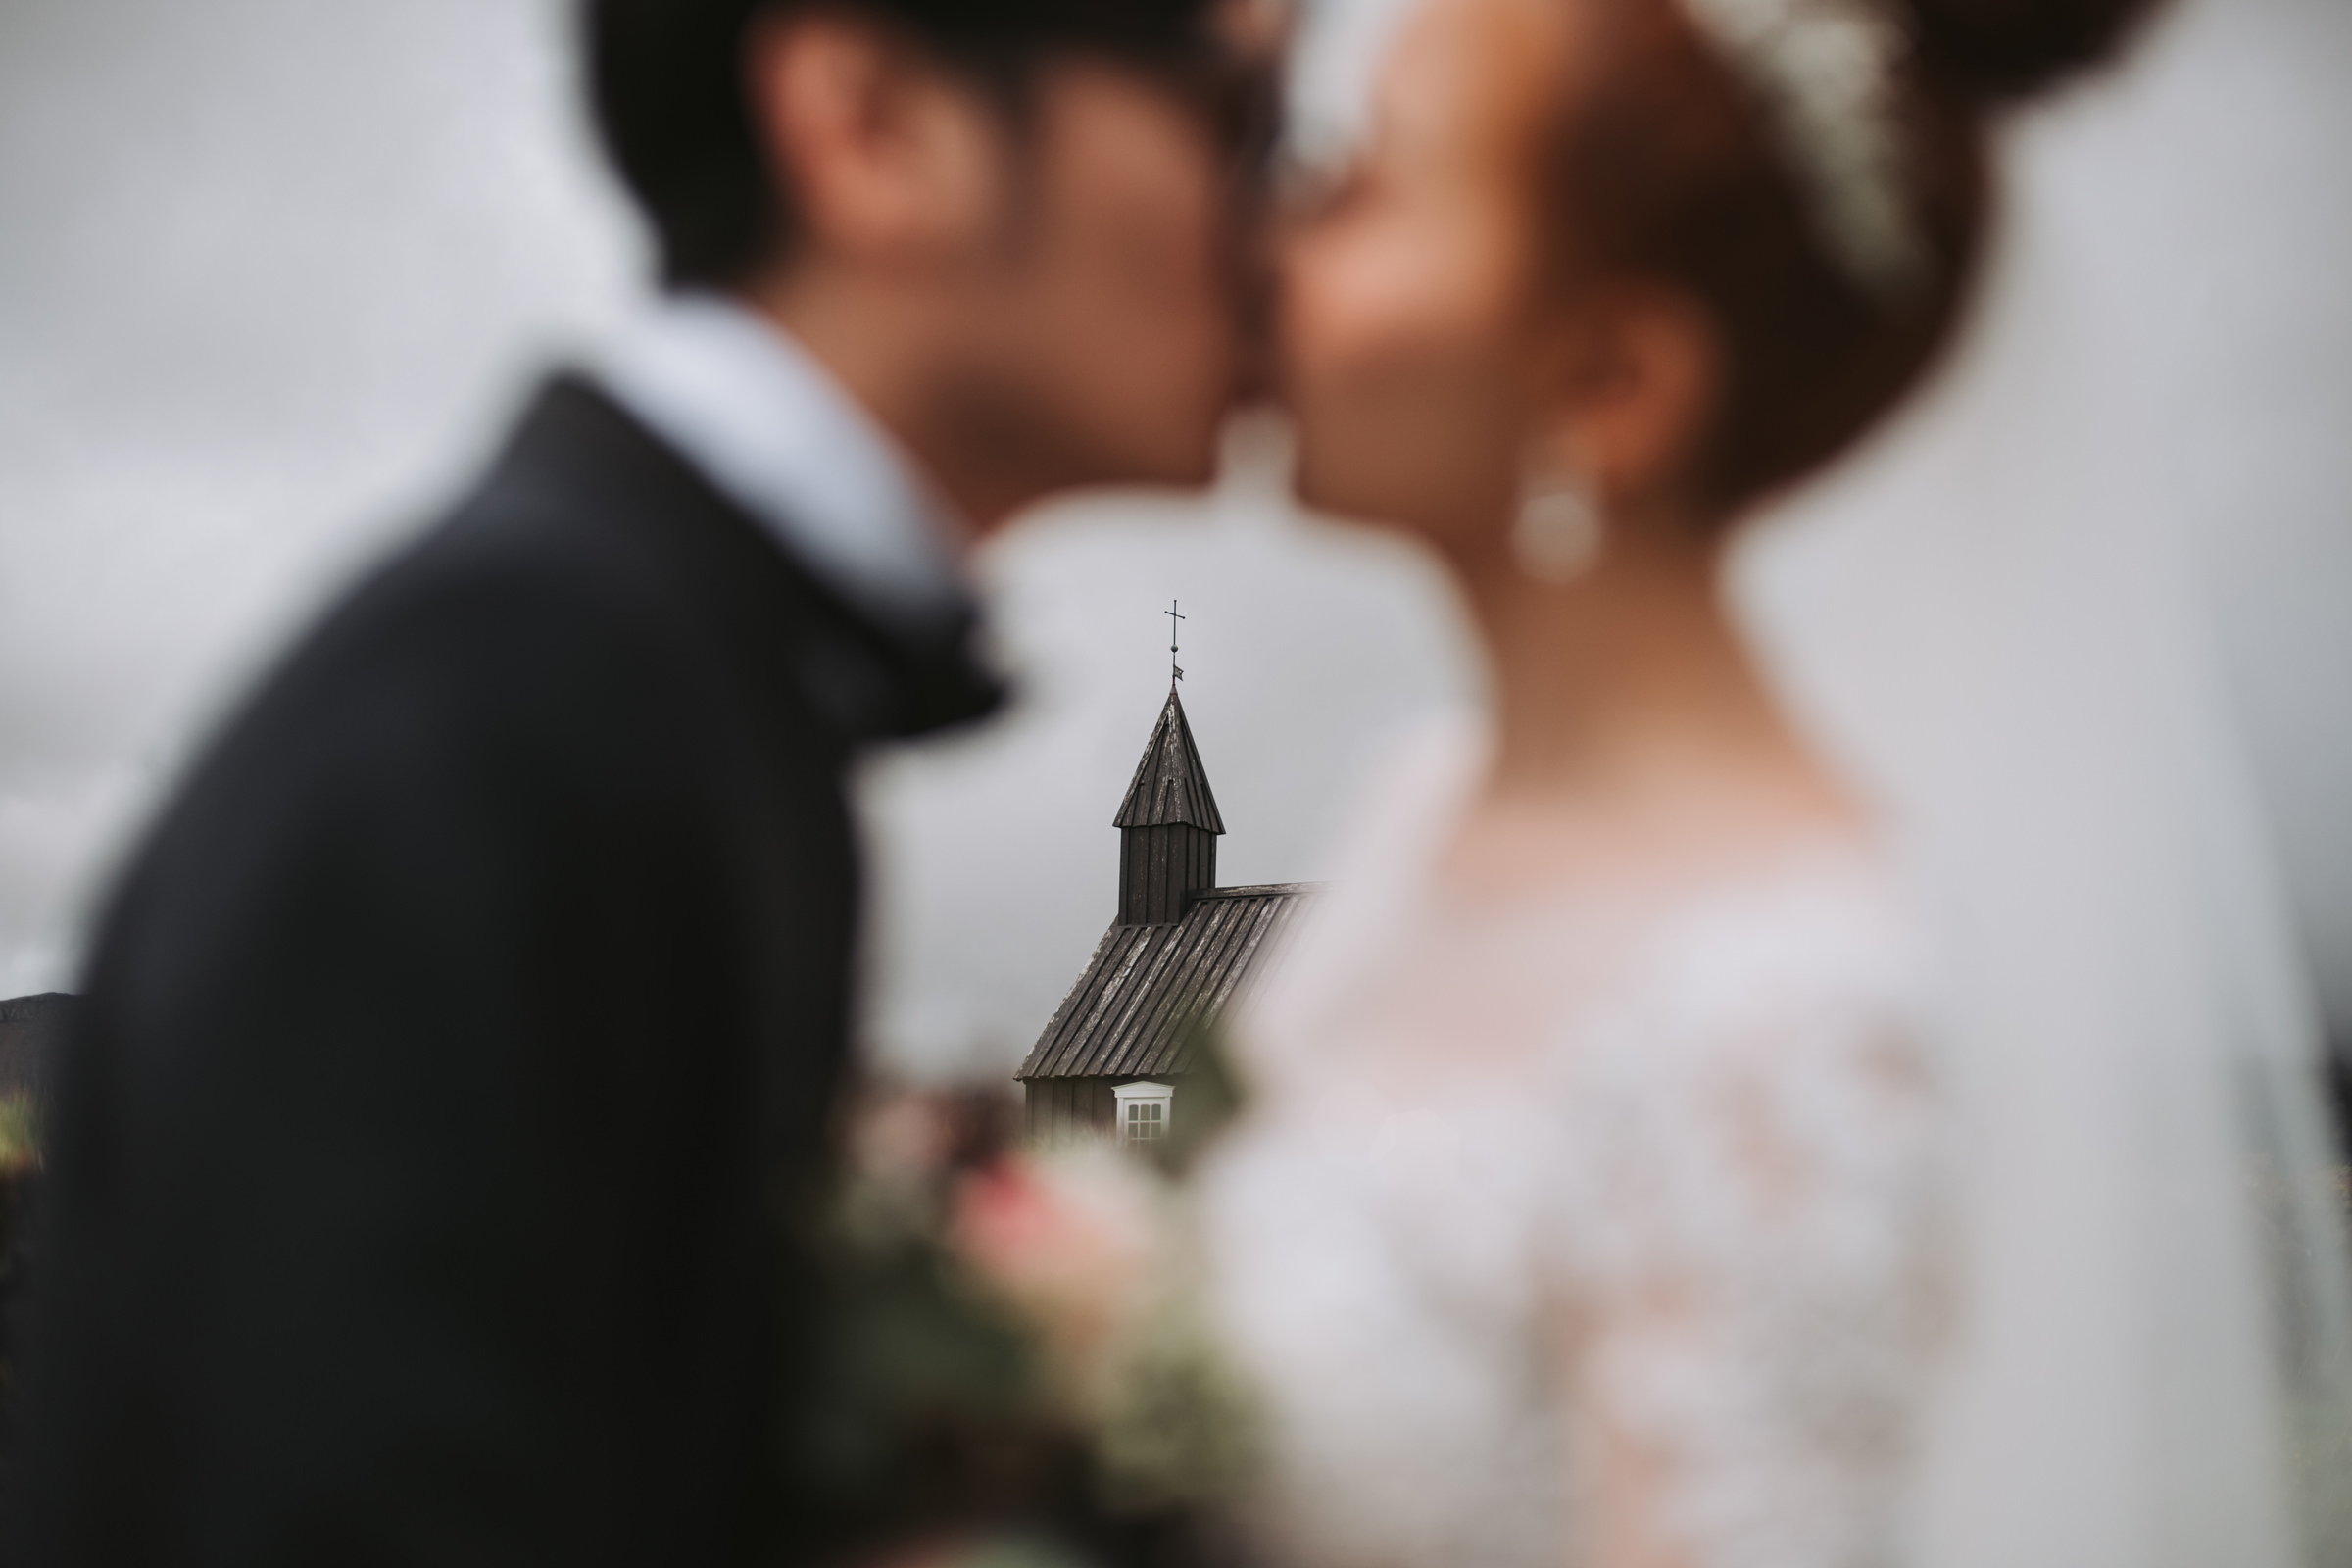 Bride and groom in front of church with faces out of focus - photo by MunKeat Studio - Malaysia